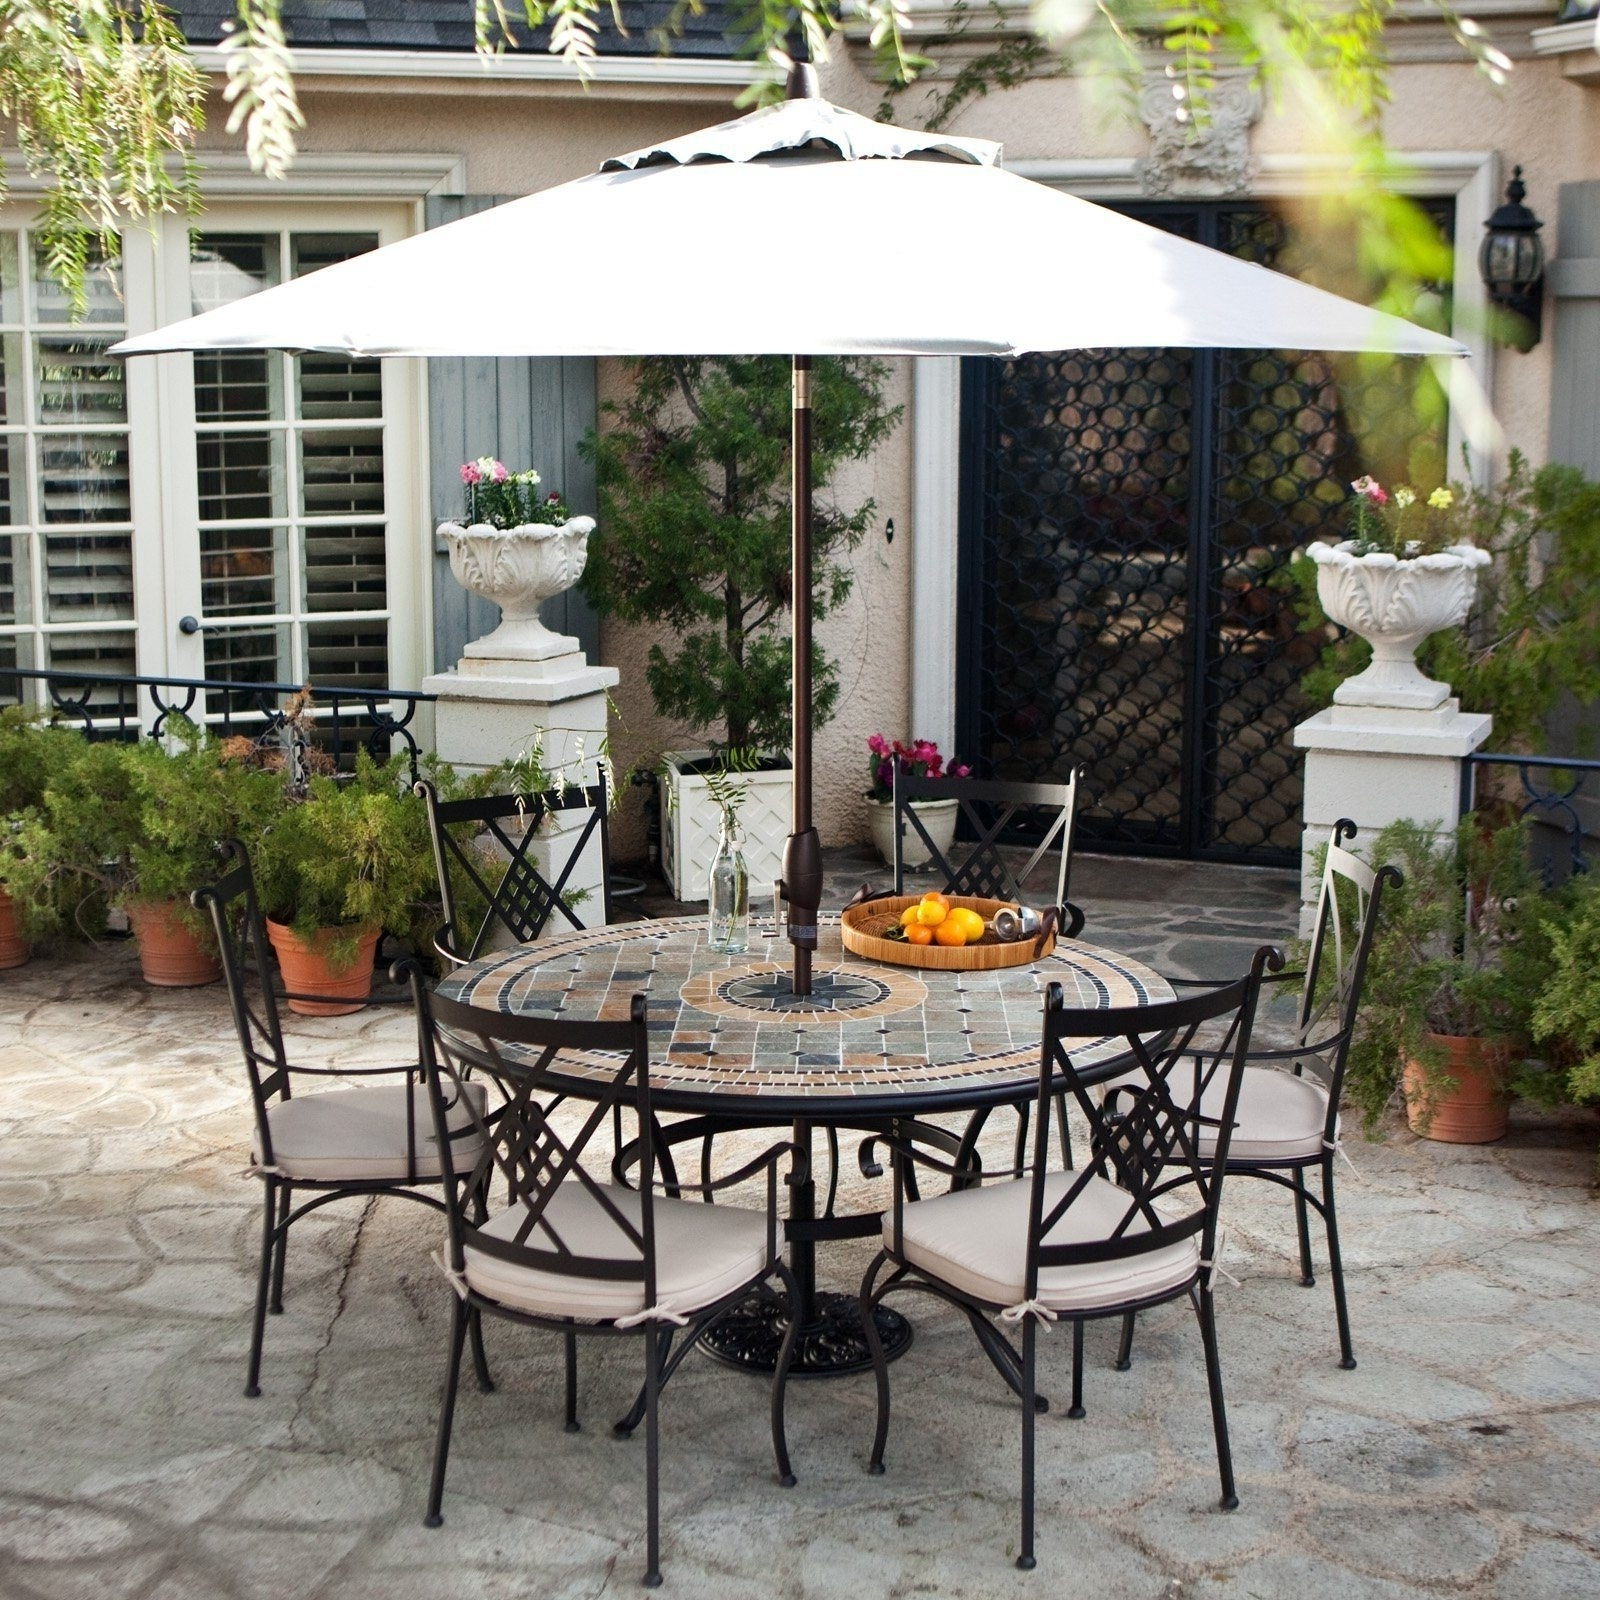 Garden: Enchanting Outdoor Patio Decor Ideas With Patio Umbrellas Within 2019 Small Patio Tables With Umbrellas (View 8 of 20)